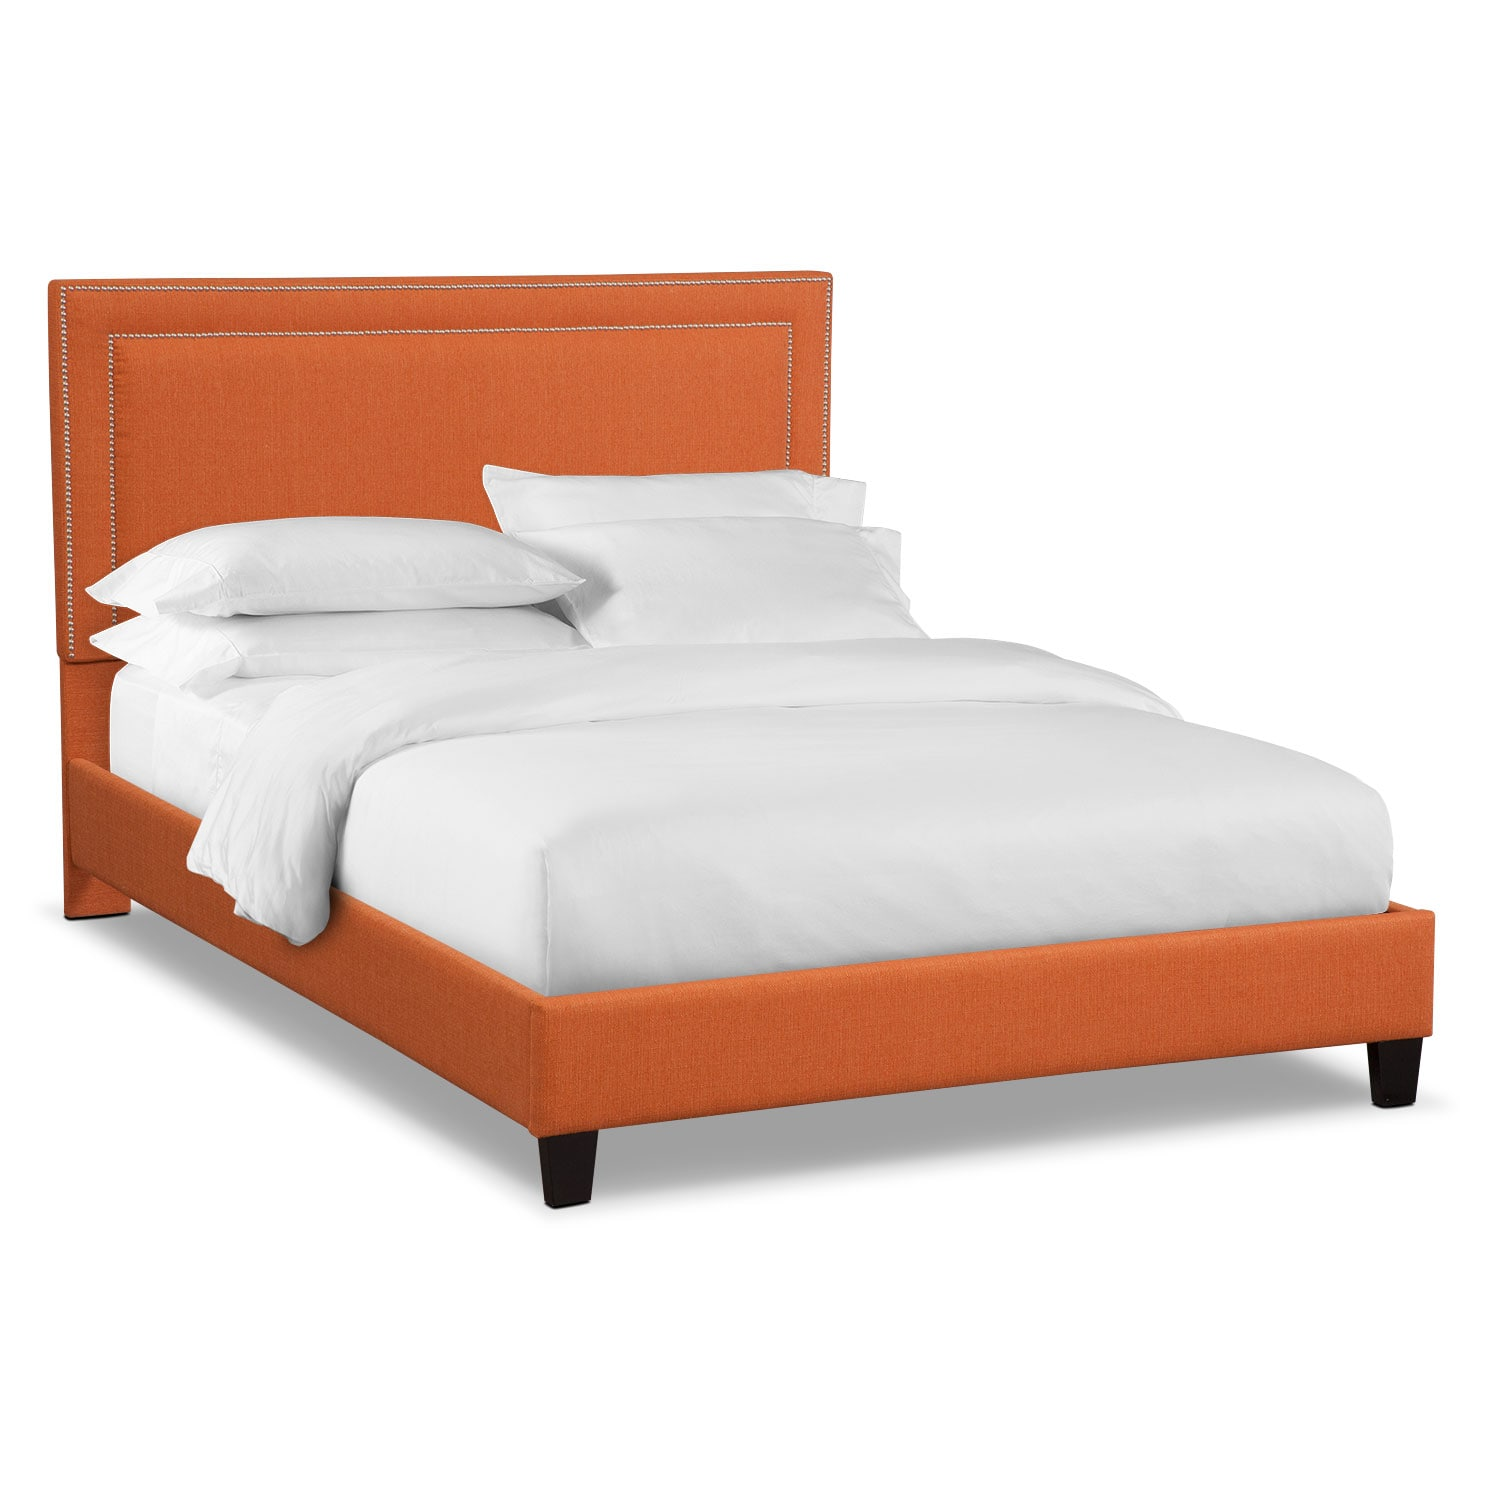 Natalie King Upholstered Bed - Orange